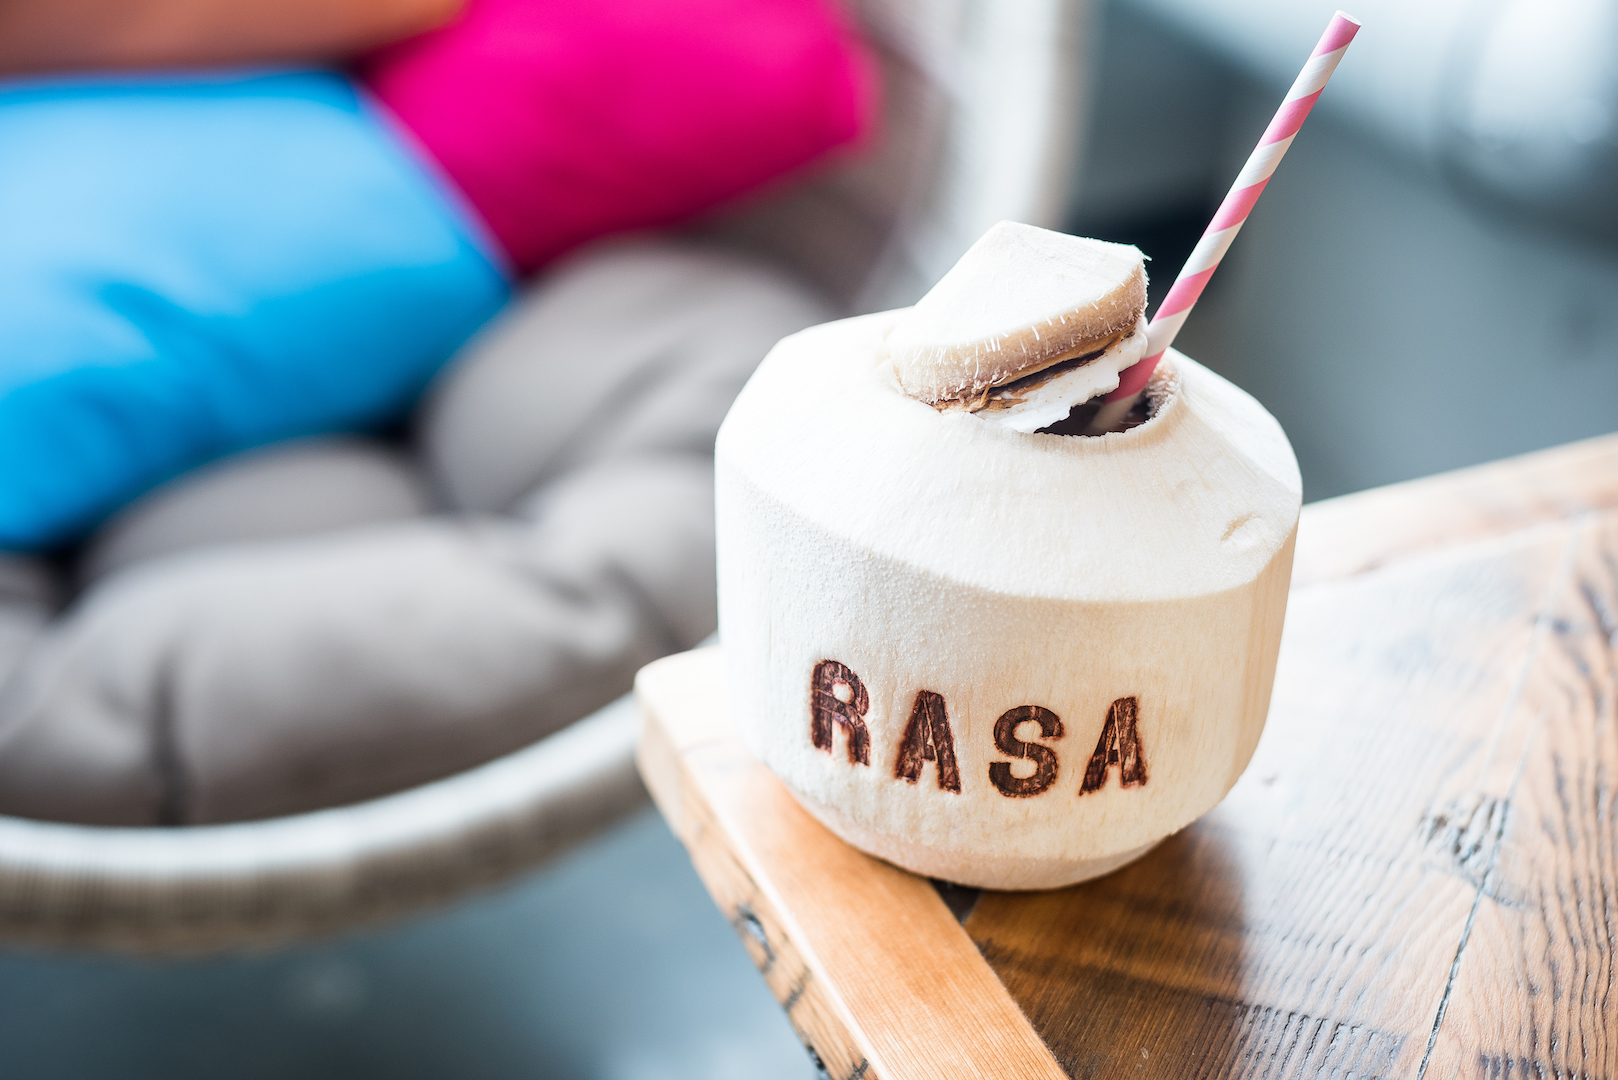 Rasa's fresh coconut is a refreshing companion to the vibrant food. (Photo by Rey Lopez)